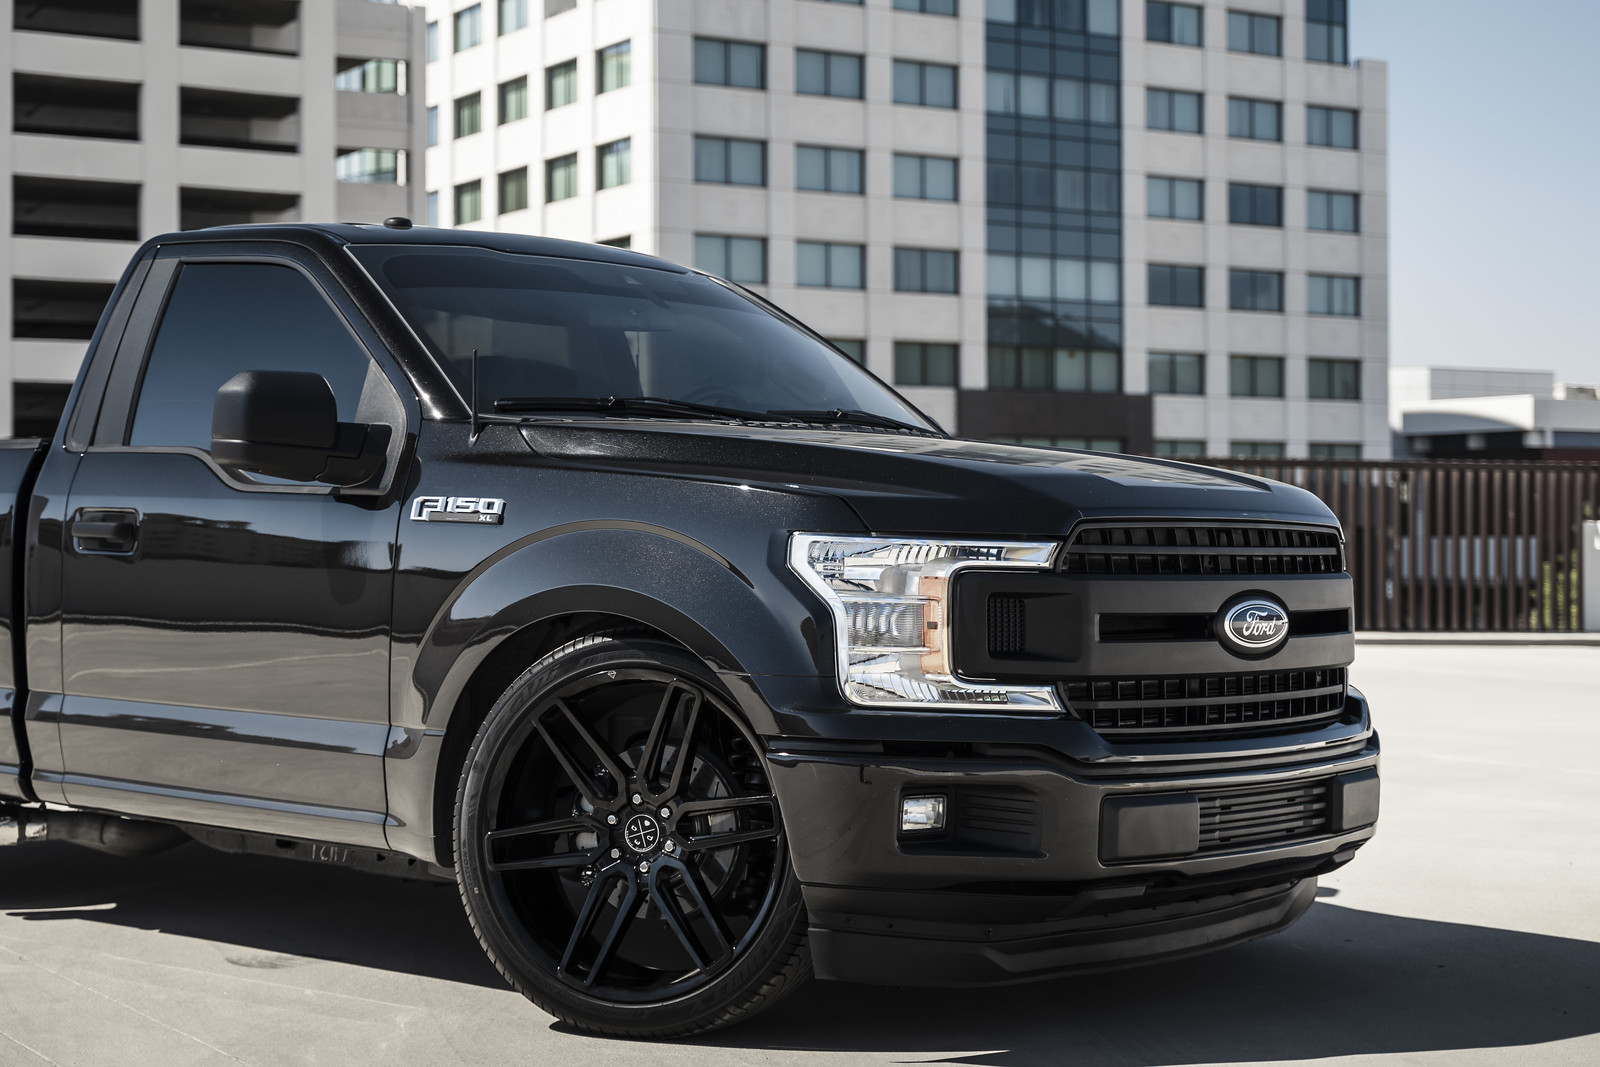 2019_Ford_F150_Sport_Single_Cab_BD17_6_Gloss_Black_4